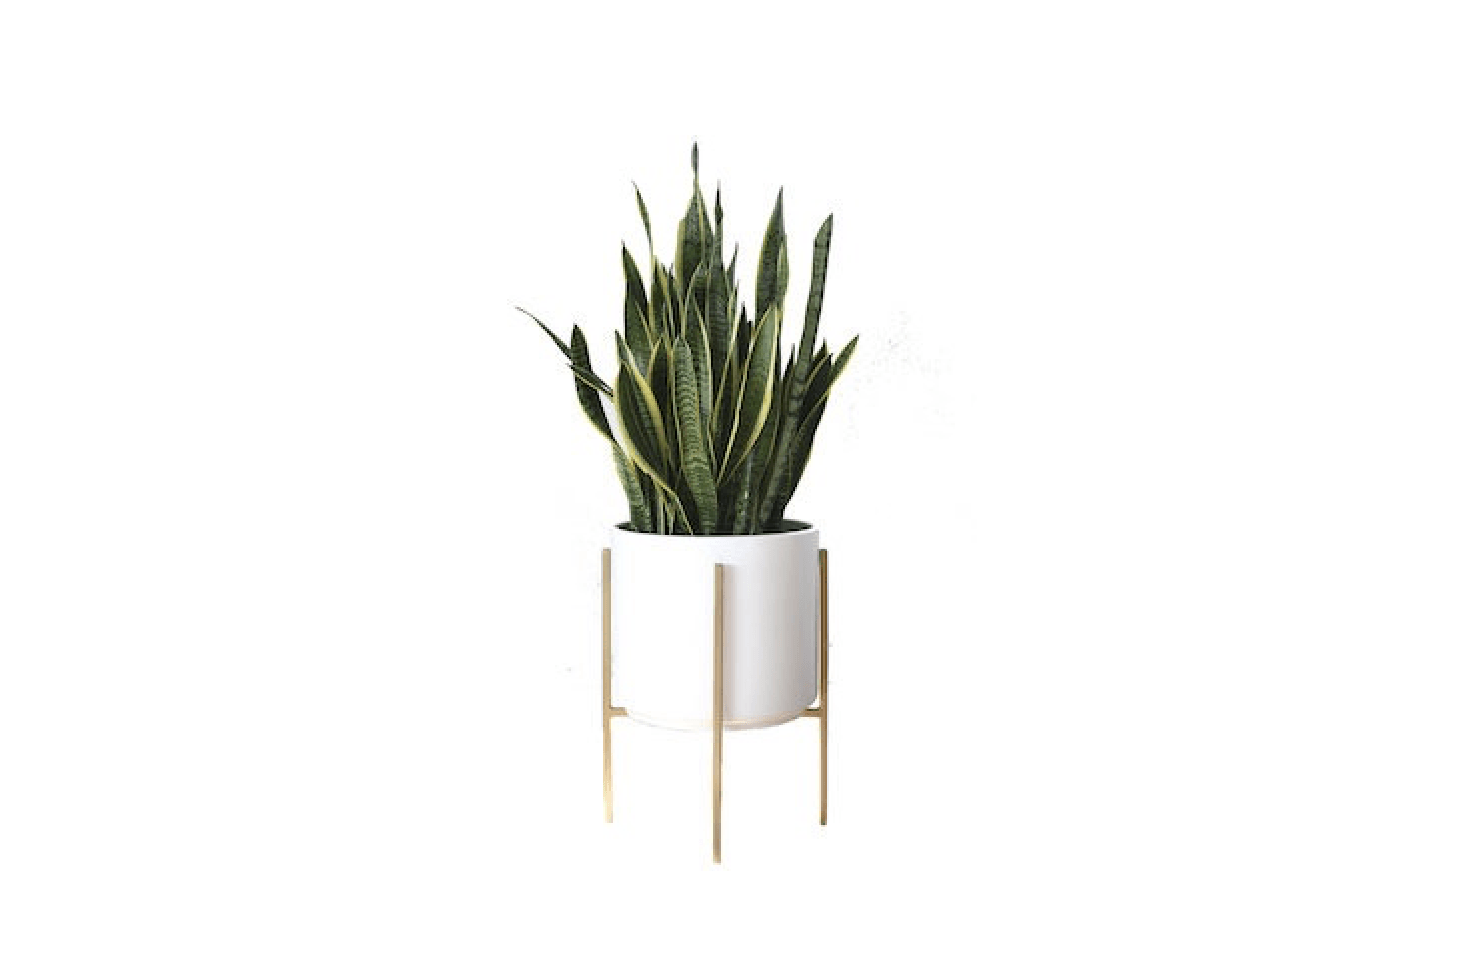 Midcentury Modern Cylinder Planters 10 Stylish Pots For Houseplants